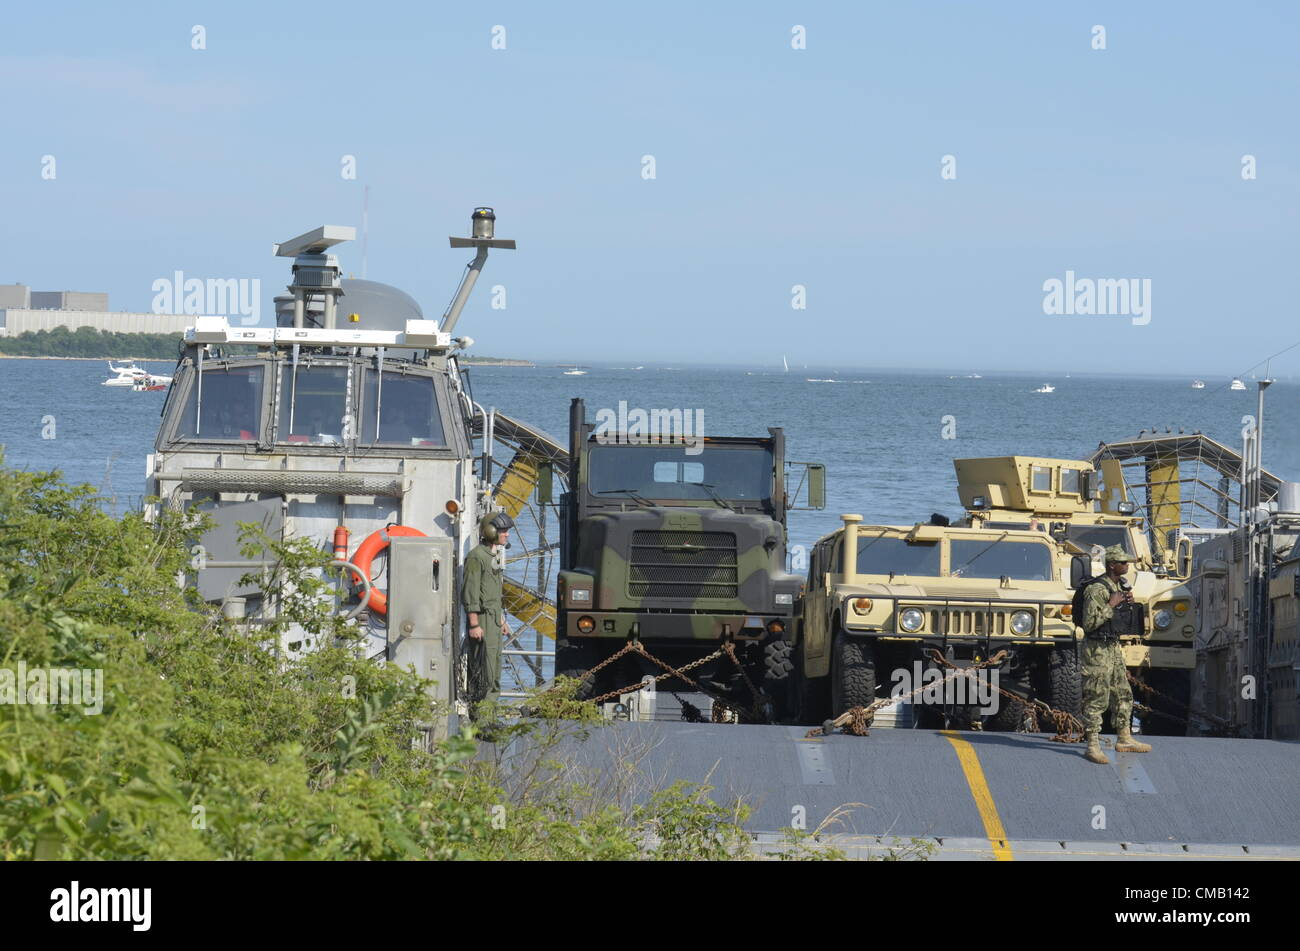 Niantic, Connecticut, July 6, 2012 - A United States Navy hovercraft LCAC (Landing Craft Air Cushioned) from the - Stock Image